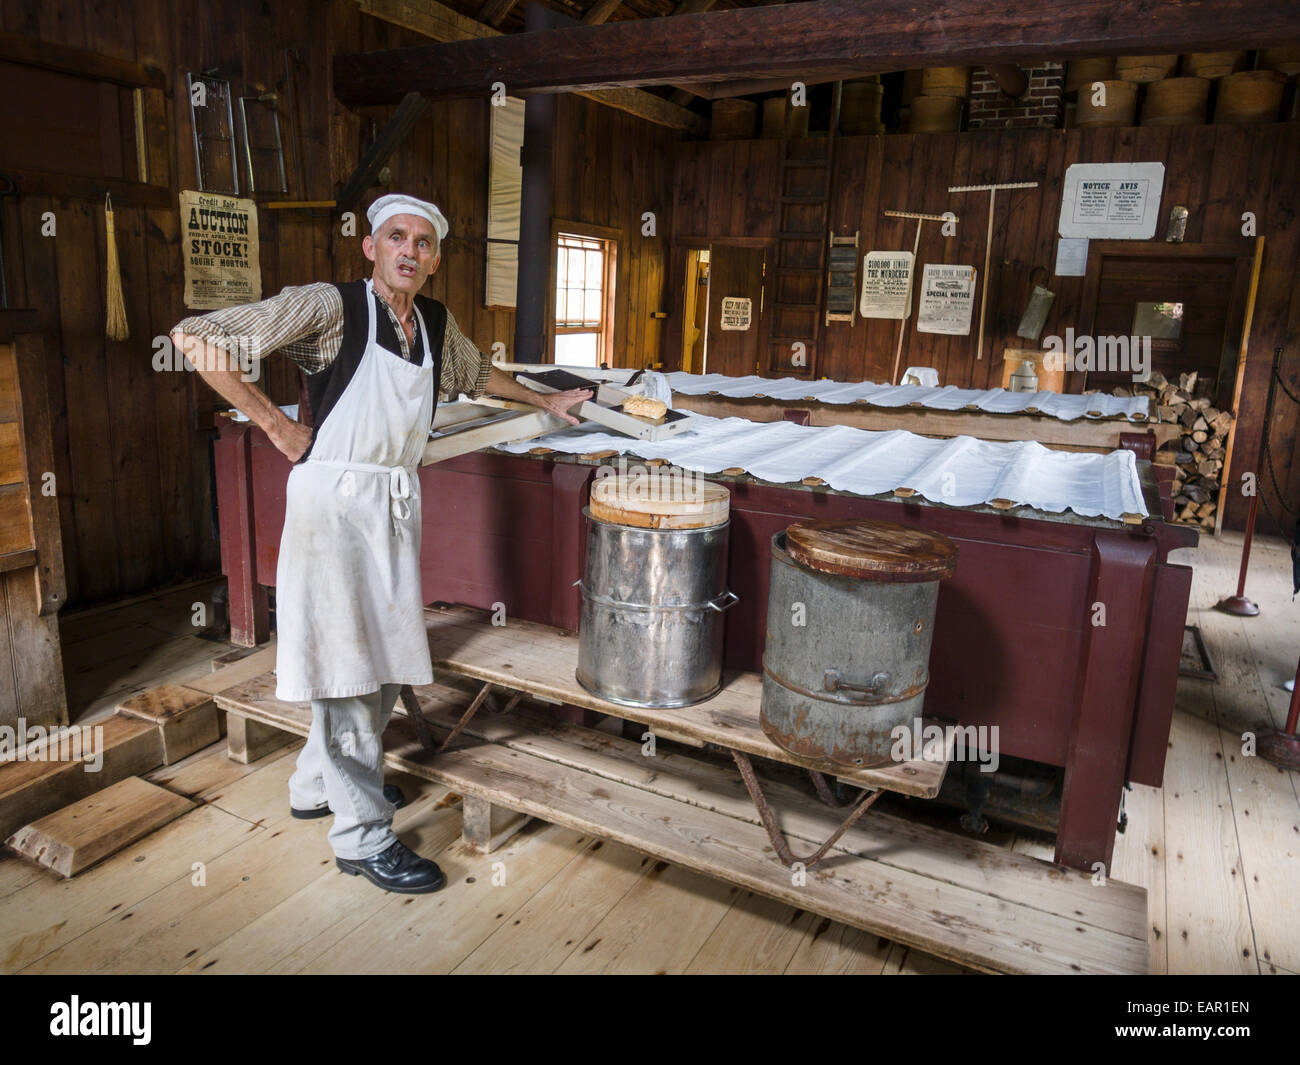 Upper Canada Village Cheese maker. The Village cheese maker explains the process while today's batch 'cooks' - Stock Image